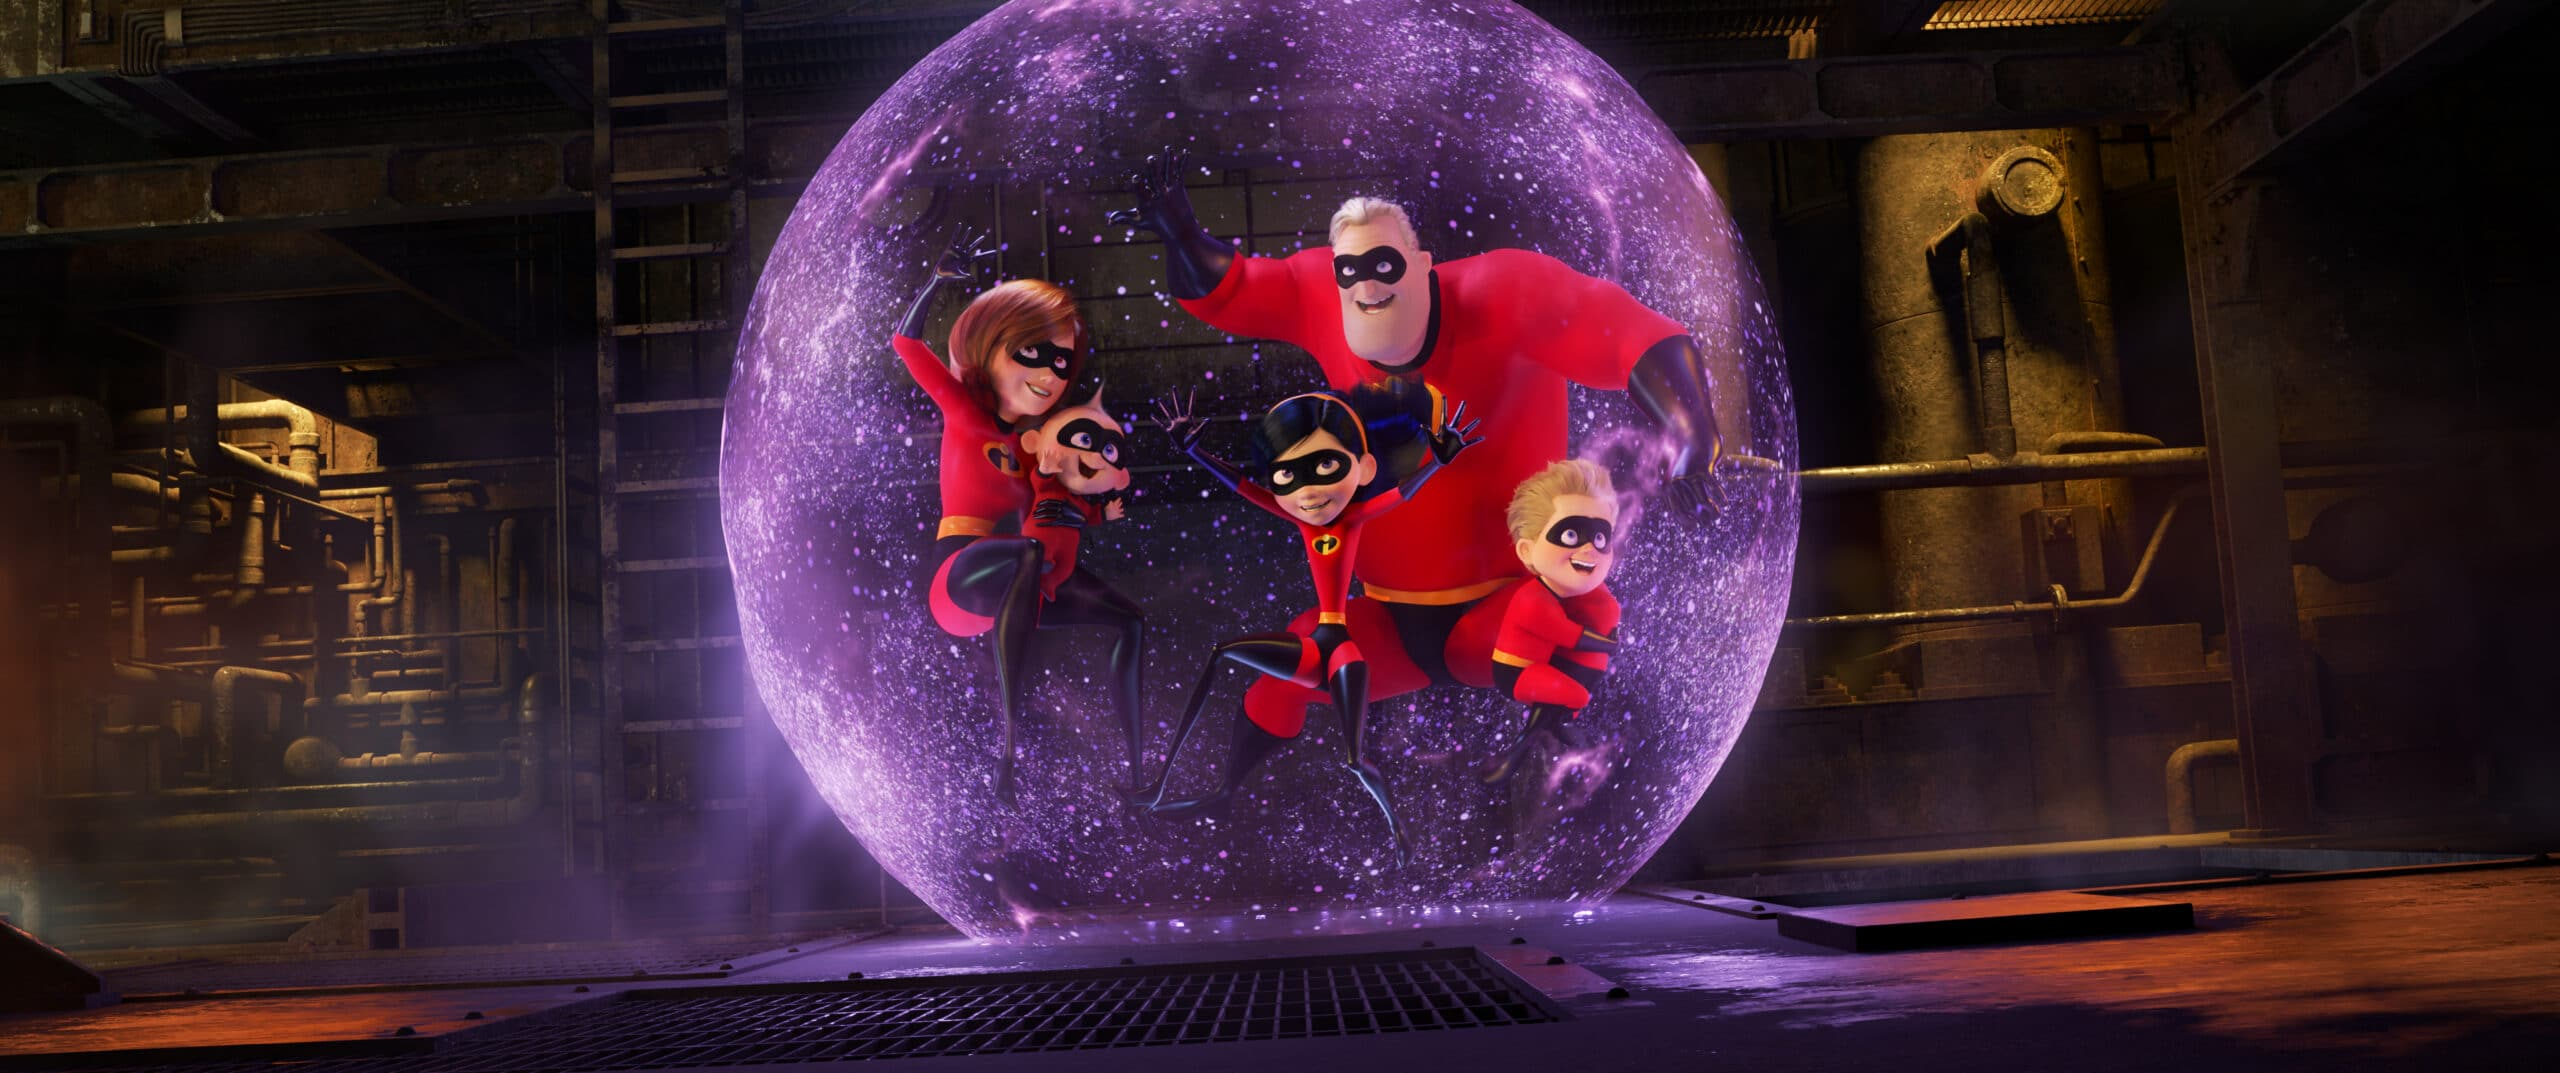 Disney Pixars Incredibles 2 – New Trailer & Poster